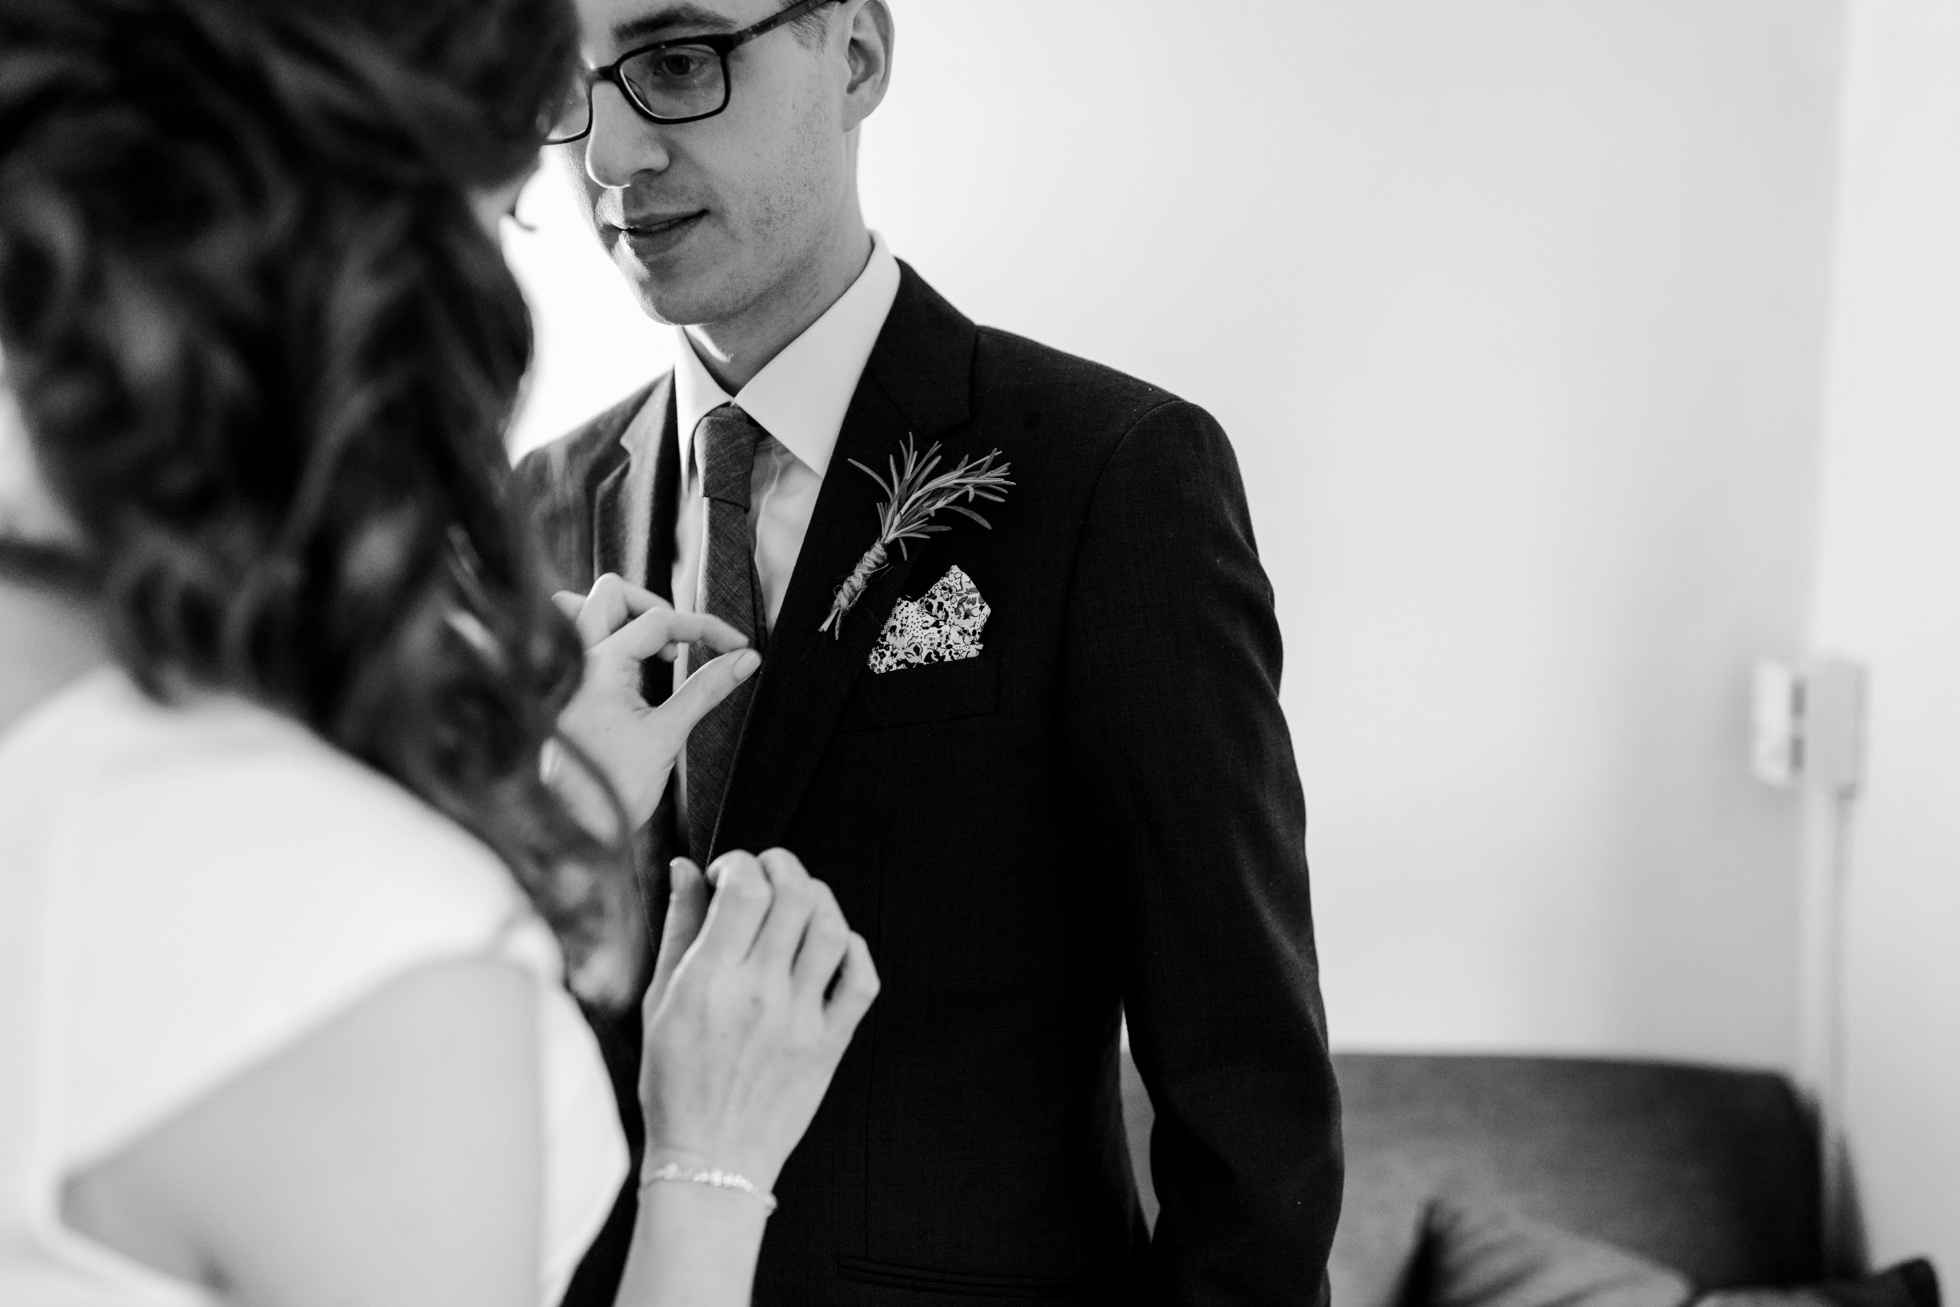 Bride Groom Getting Ready Together Wedding Ideas